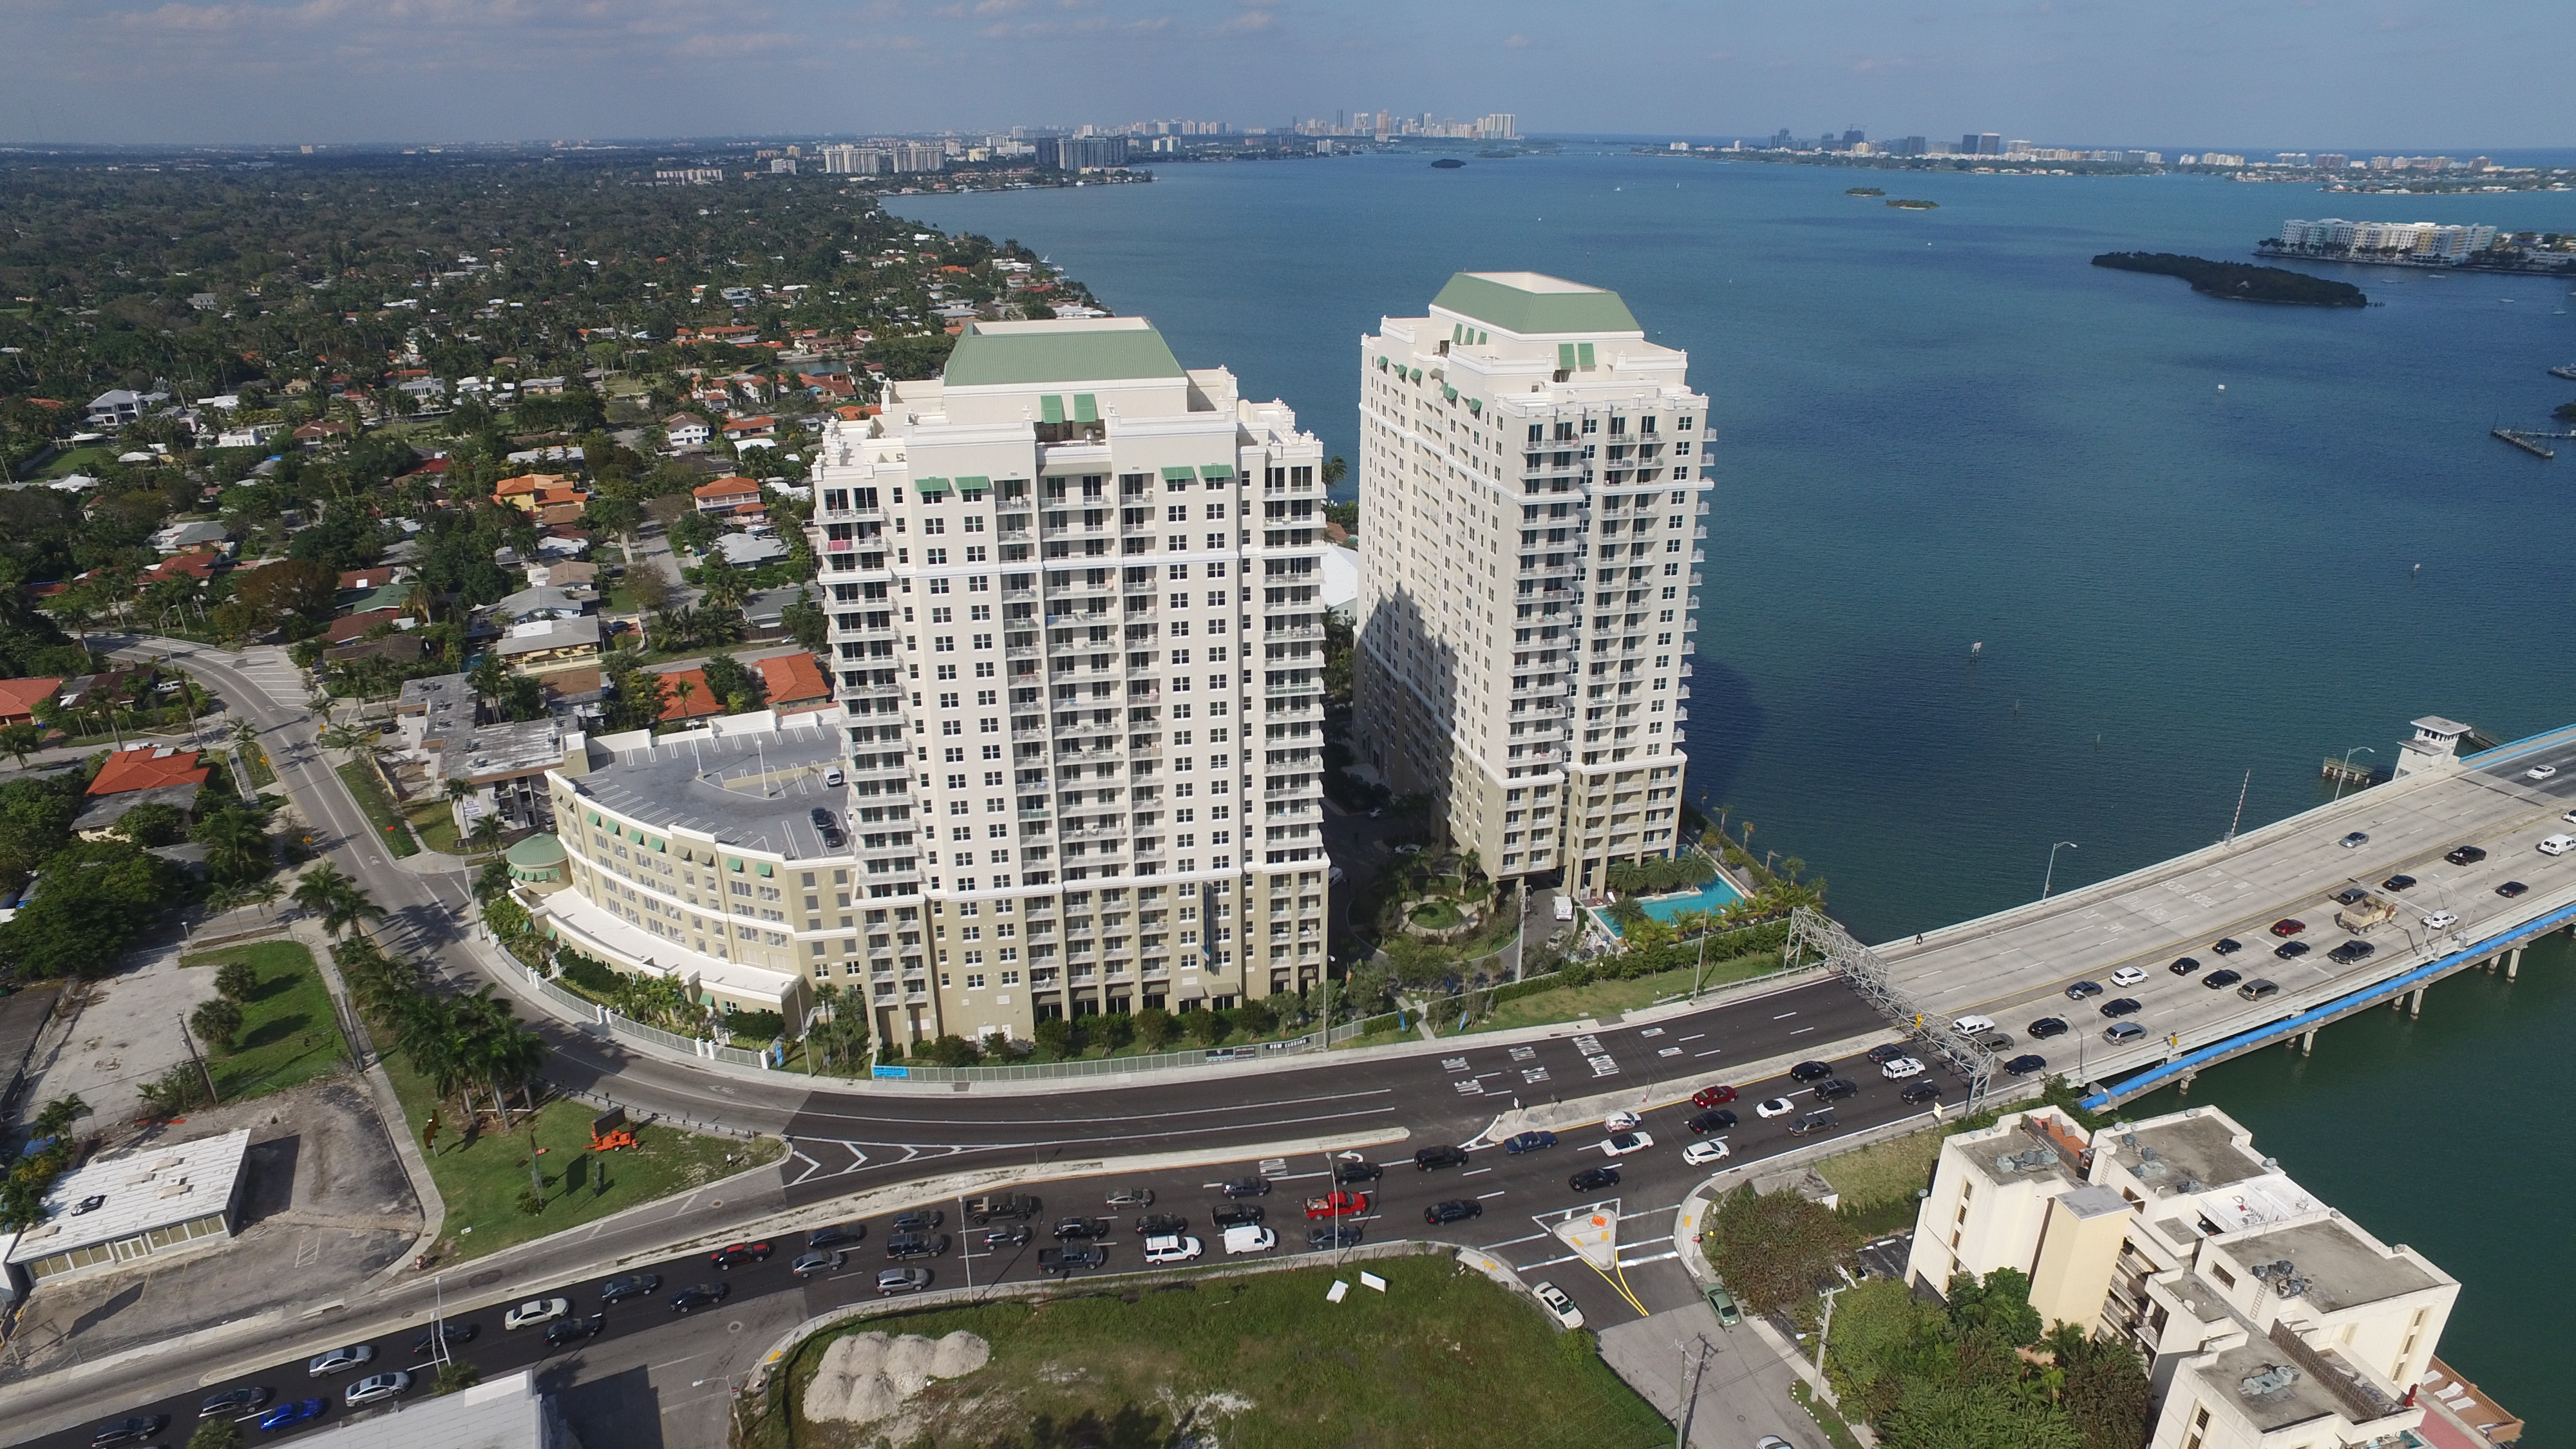 Aerial view of two waterfront high rise apartment buildings and causeway.